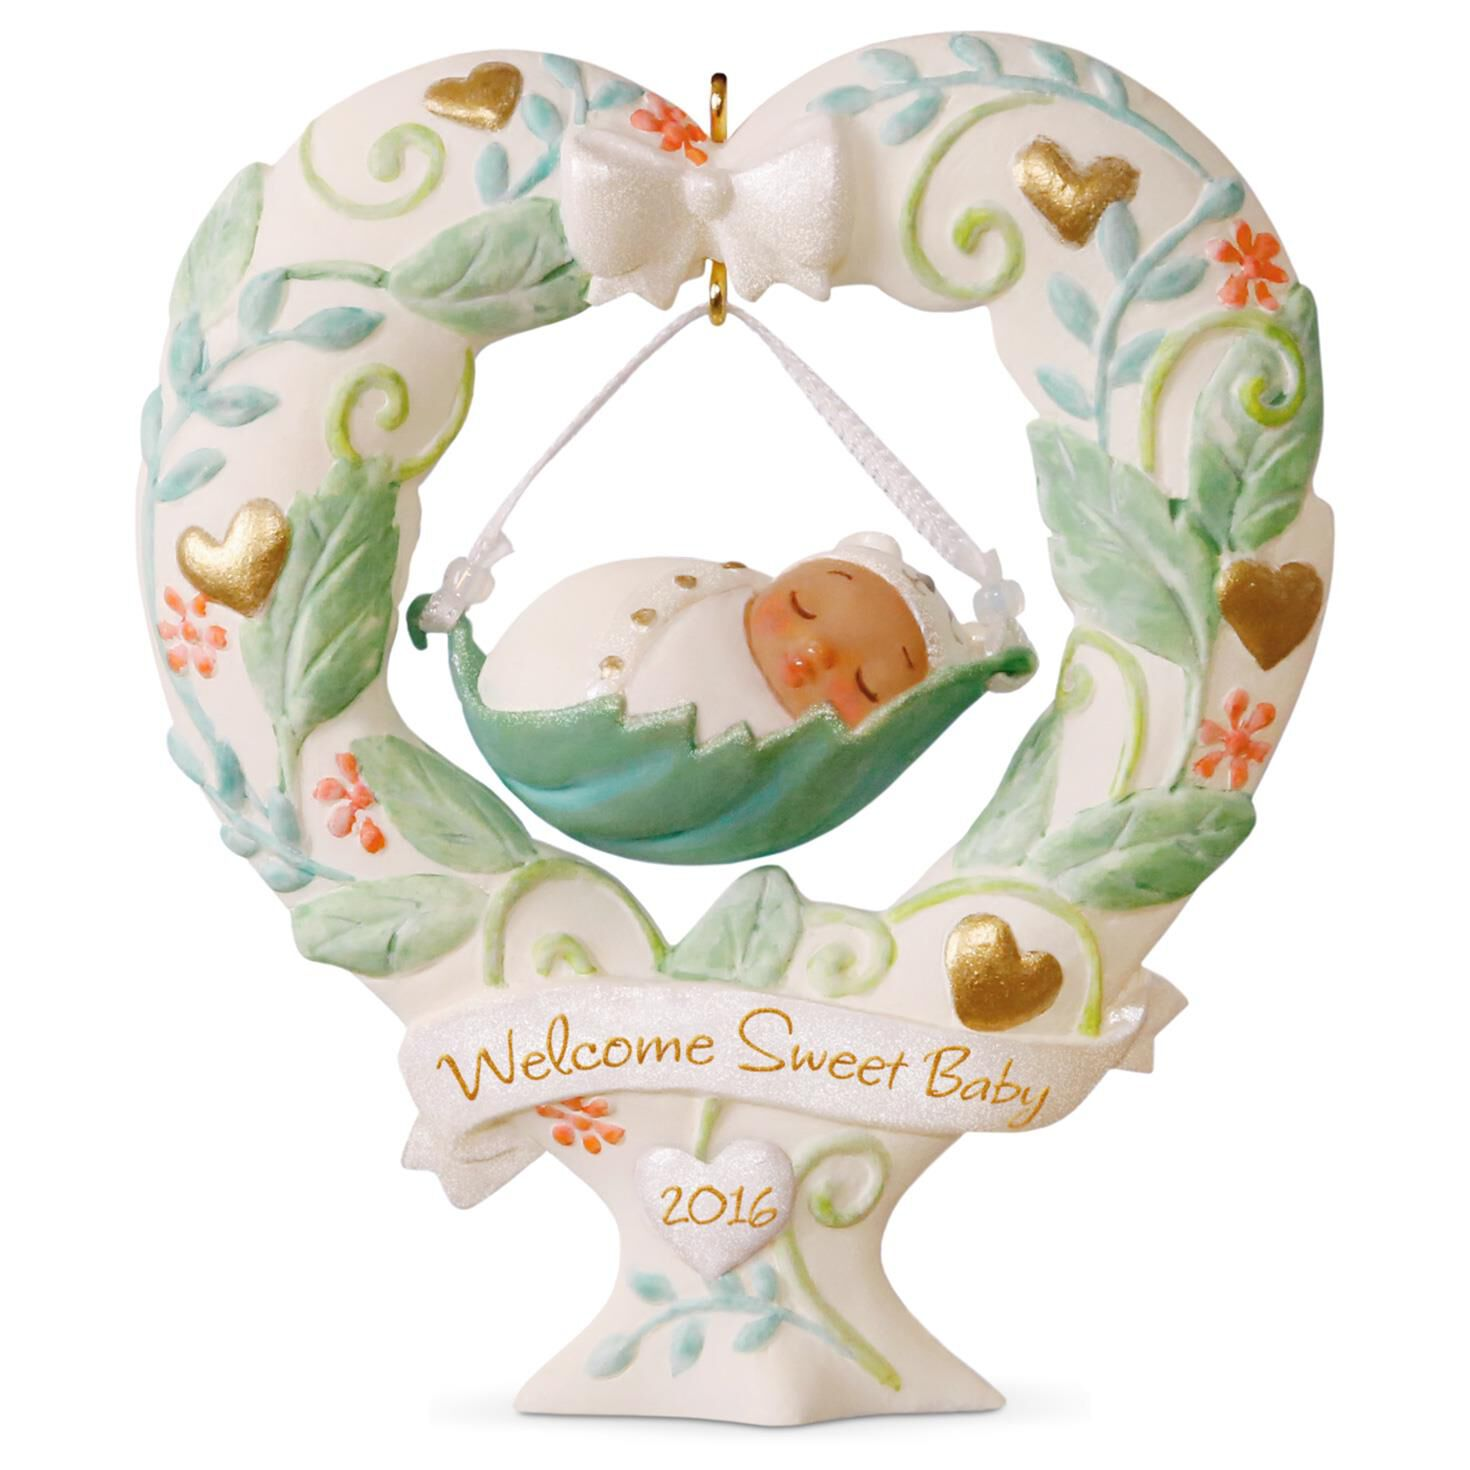 Baby ornament - Baby S First Christmas Heart Shaped Baby Swing Ornament Keepsake Ornaments Hallmark